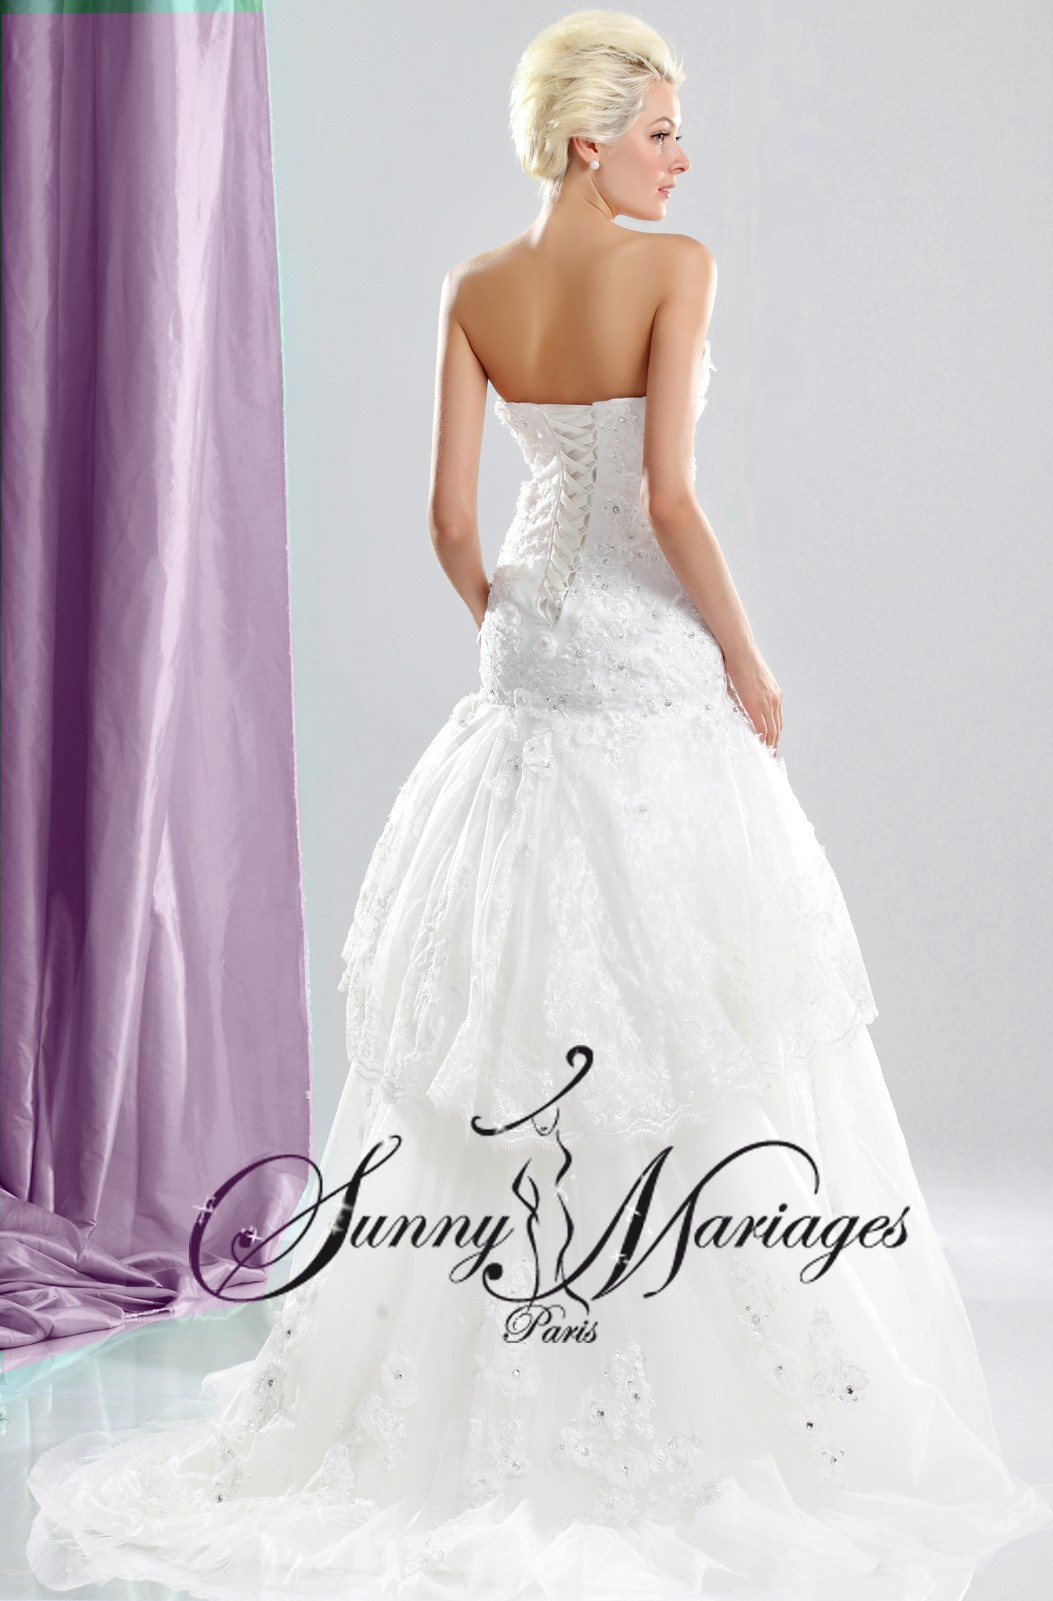 Robe de mariee bustier sirene et dentelle collection chic et pas cher sunny mariages sct - Robe mariee bustier dentelle ...